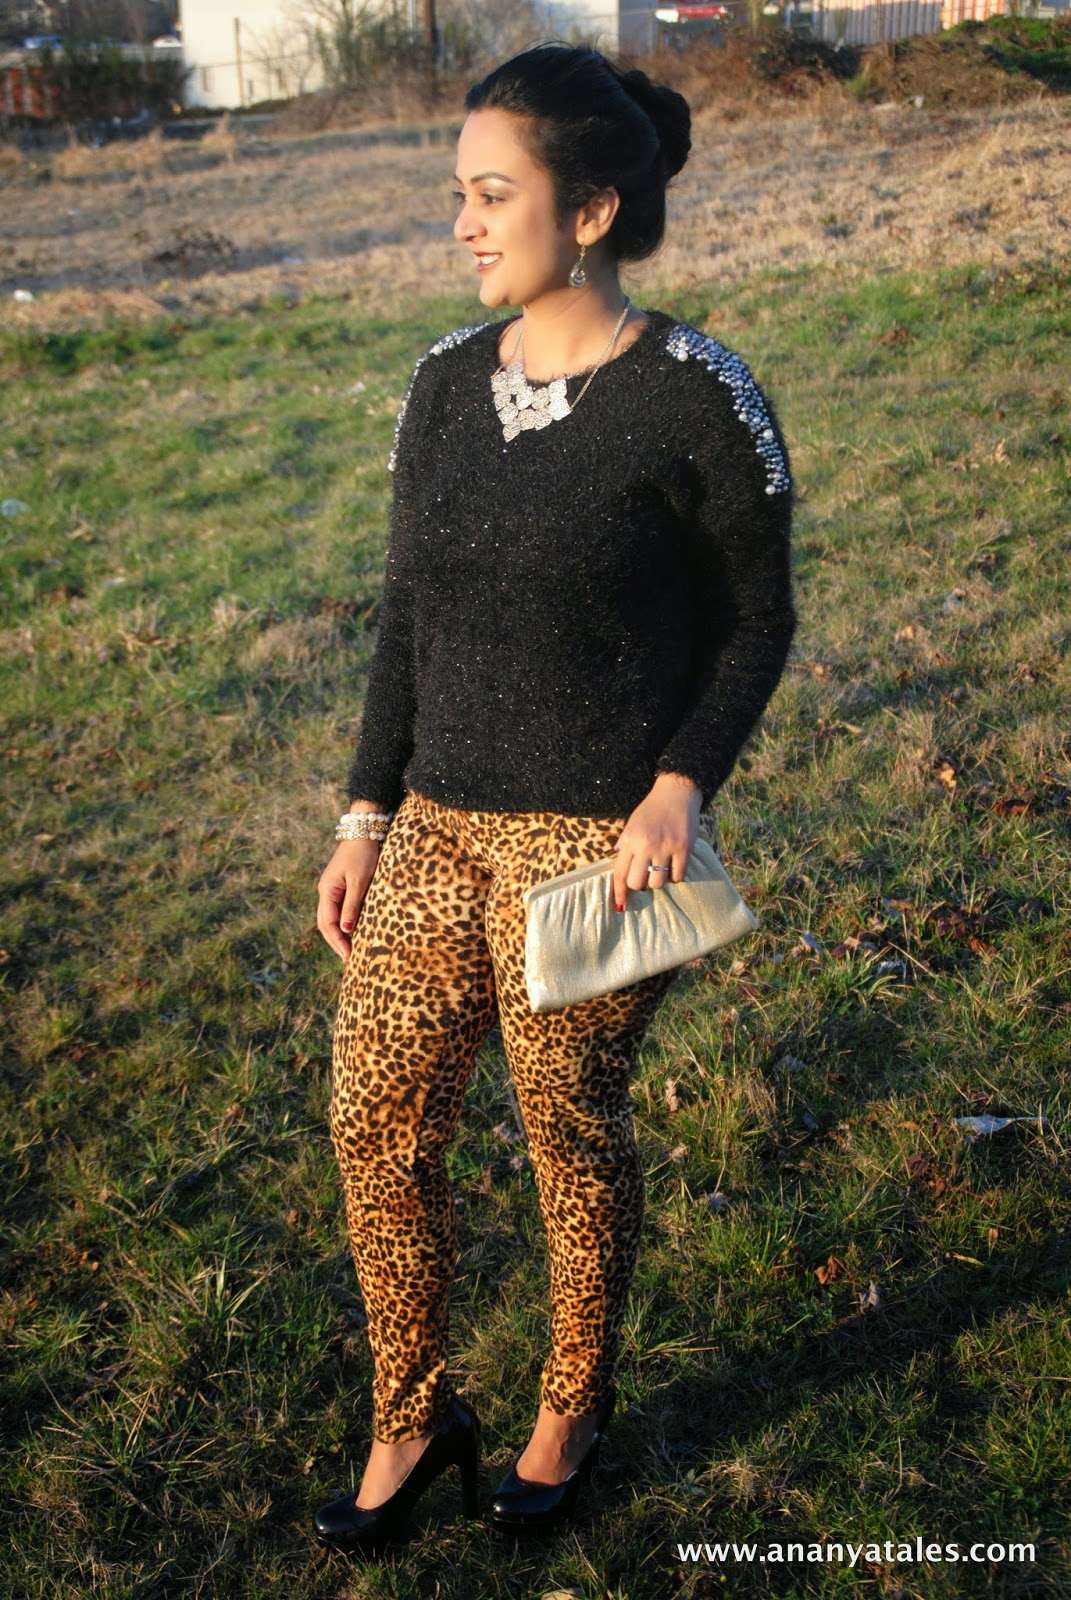 Black pumps, leopard print pants, golden accessories, golden clutch, black furry sweater